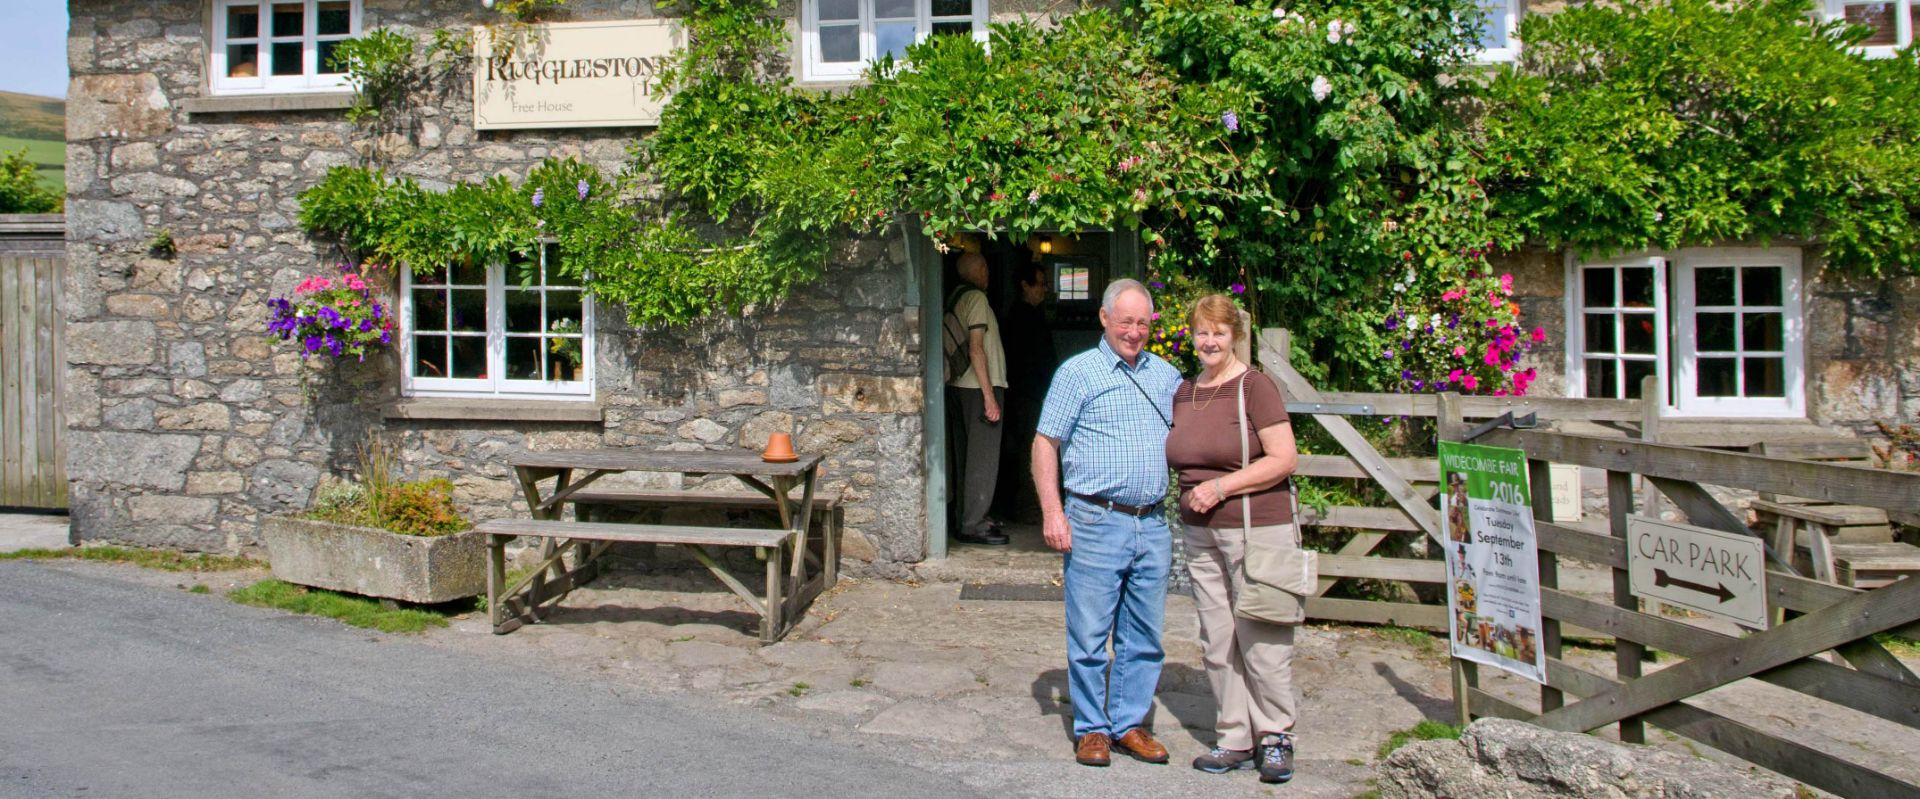 Guests at The Rugglestone Inn at Widecombe